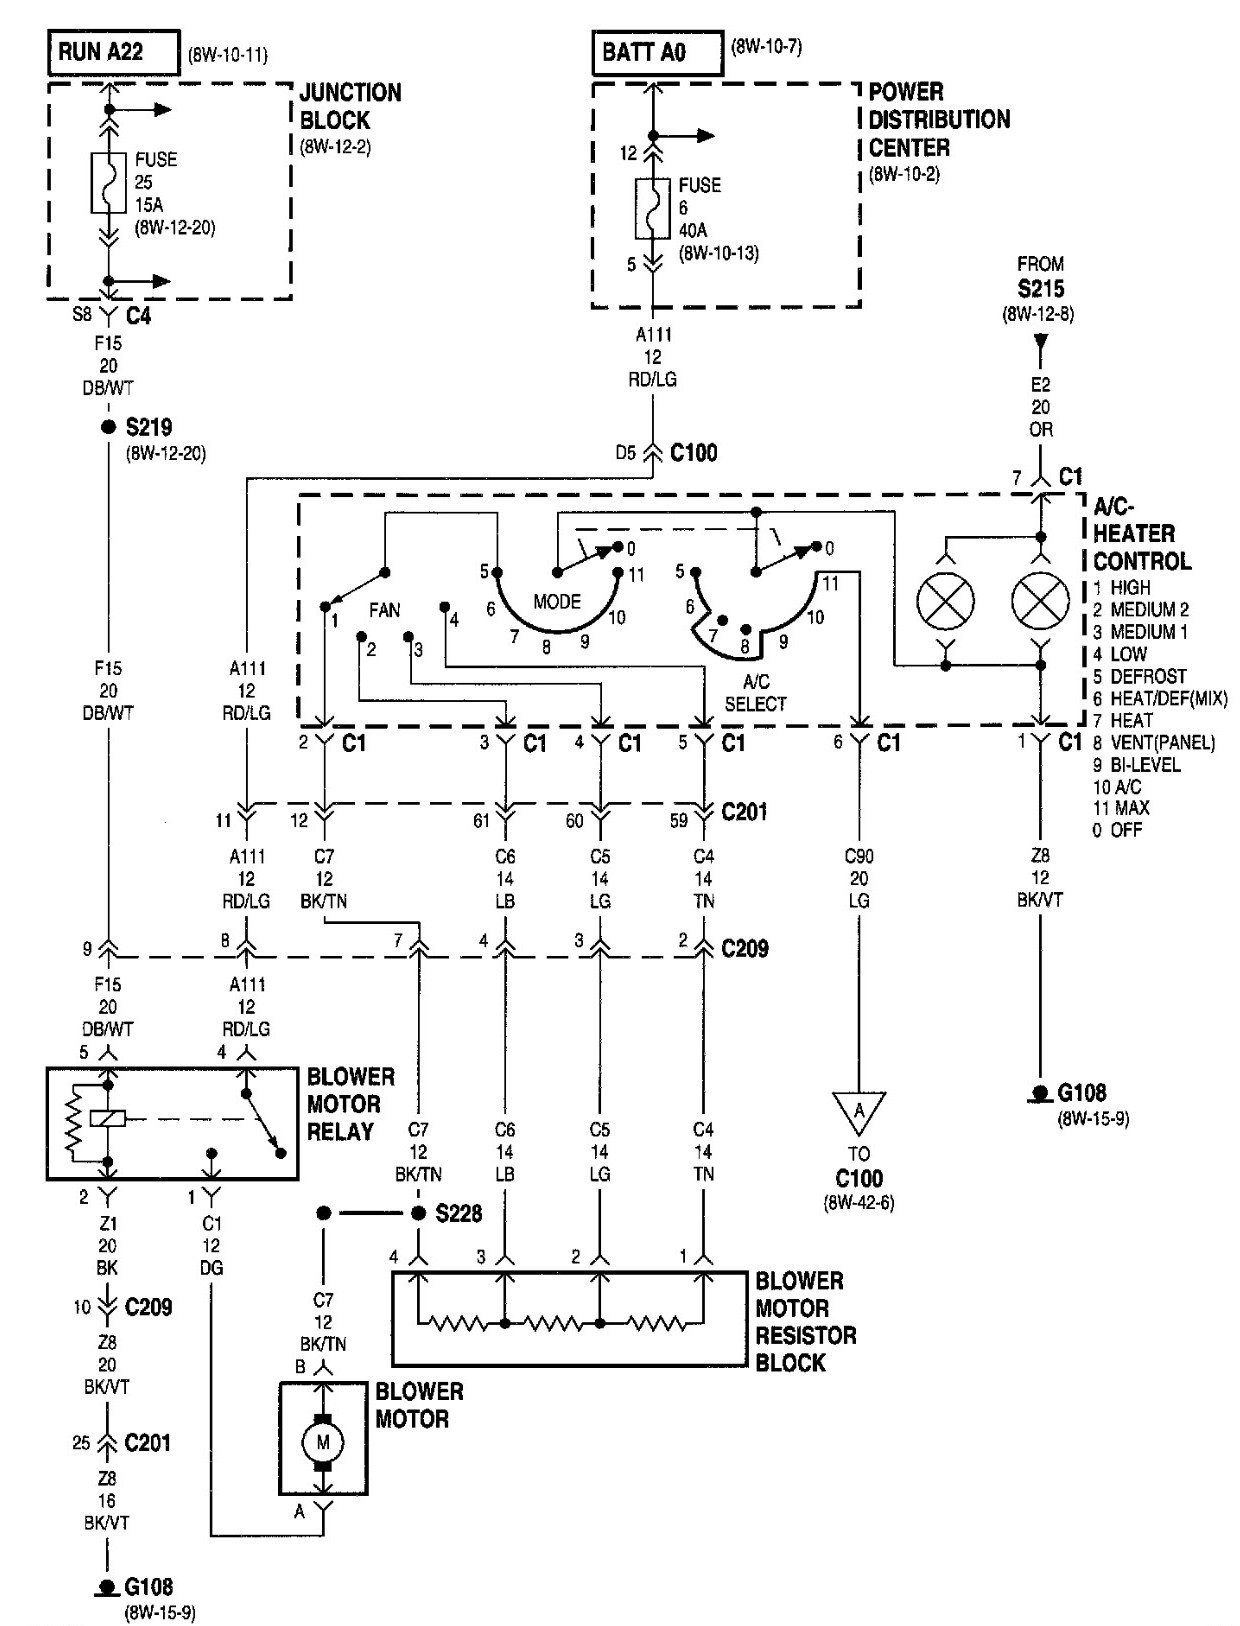 2002 Jeep Liberty Wiring Diagram 2003 Jeep Liberty Pcm ... Jeep Grand Cherokee Pcm Wiring Harness on